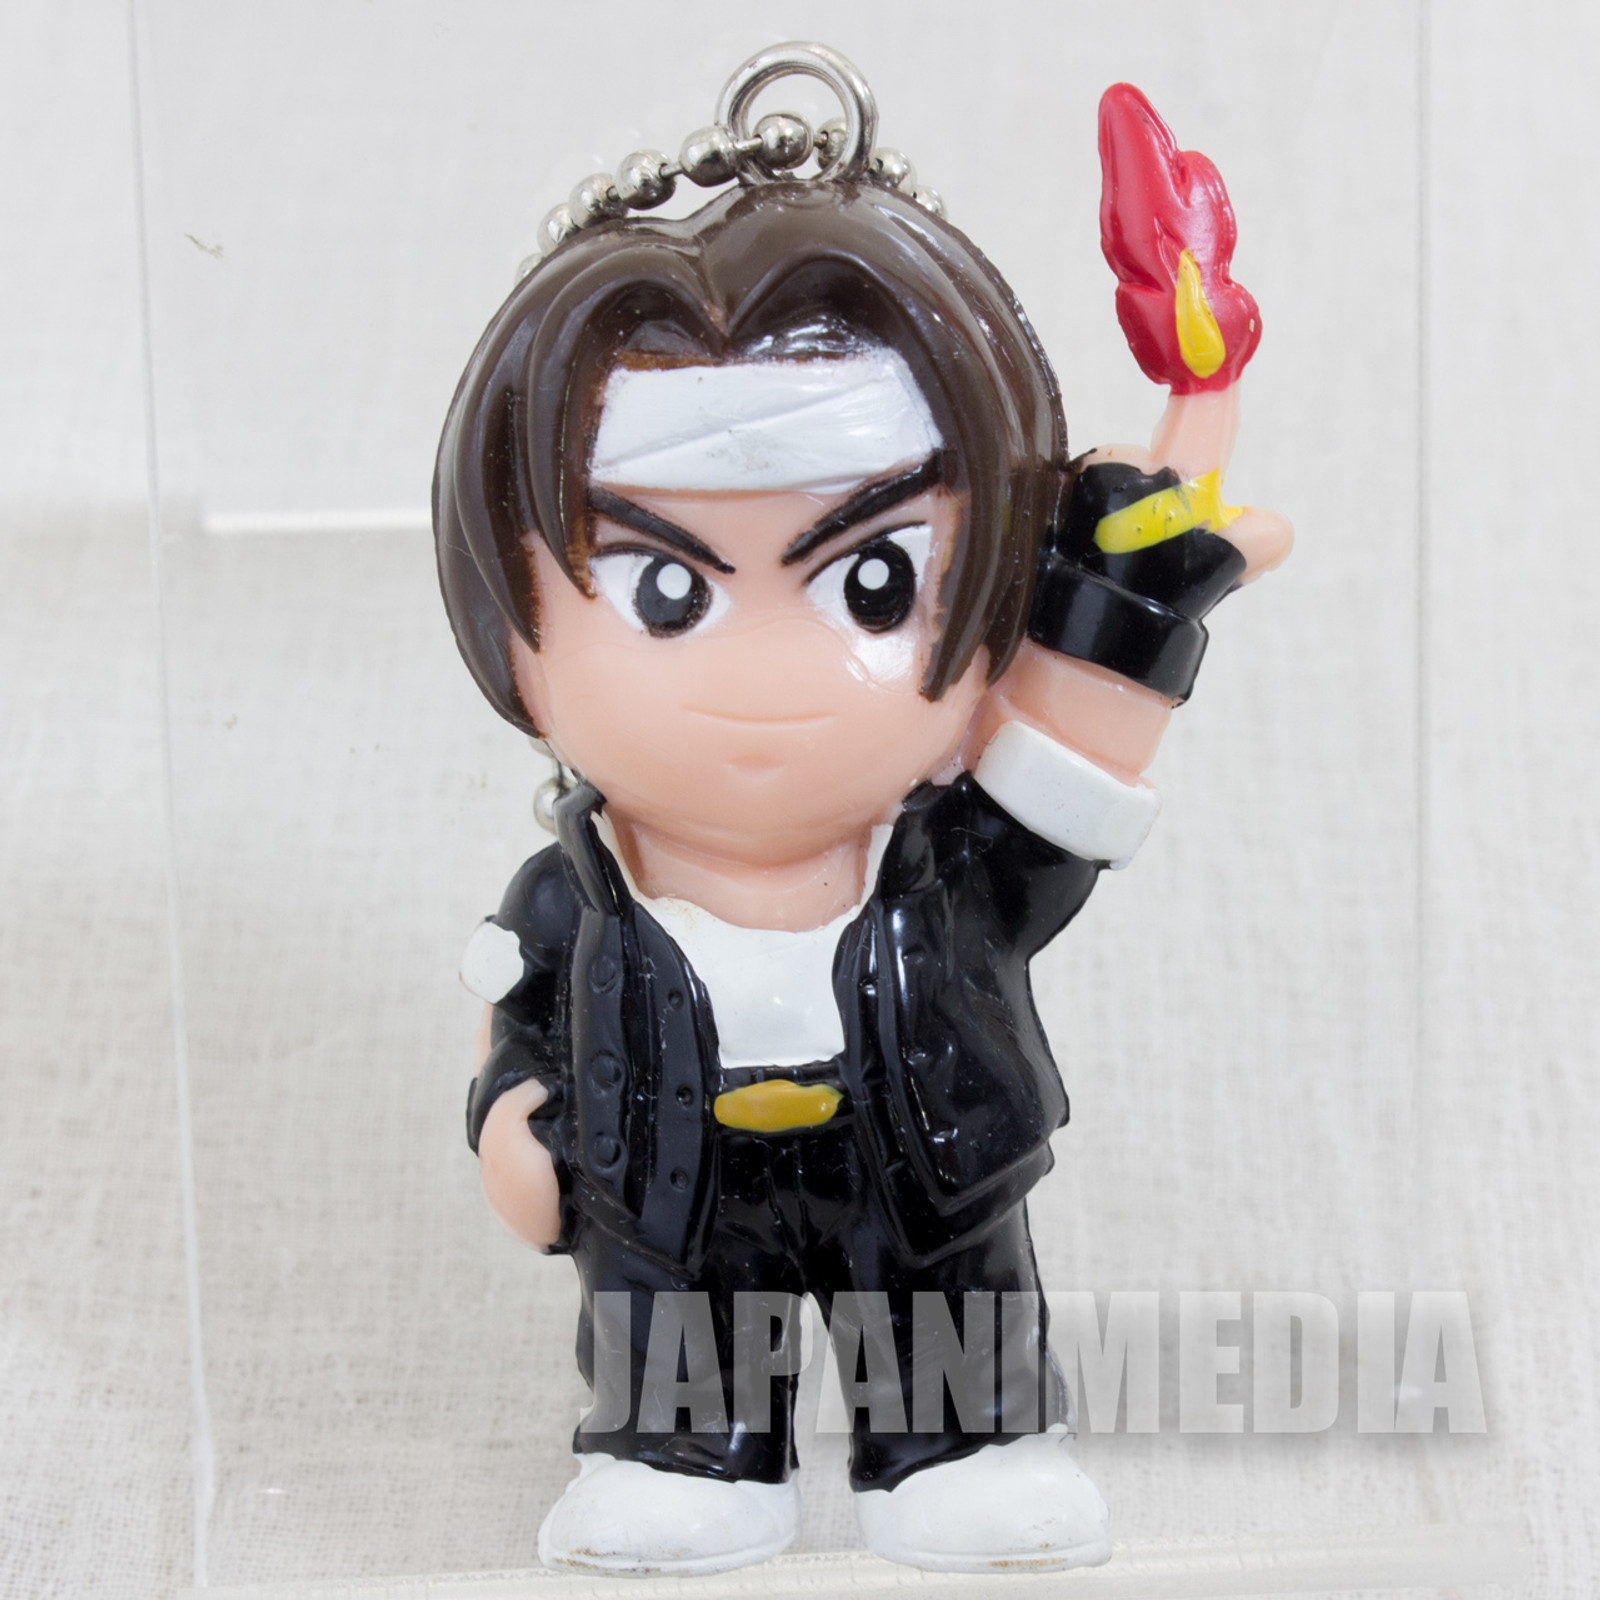 Retro KOF / King of Fighters Kyo Kusanagi Figure Ballchain SNK JAPAN